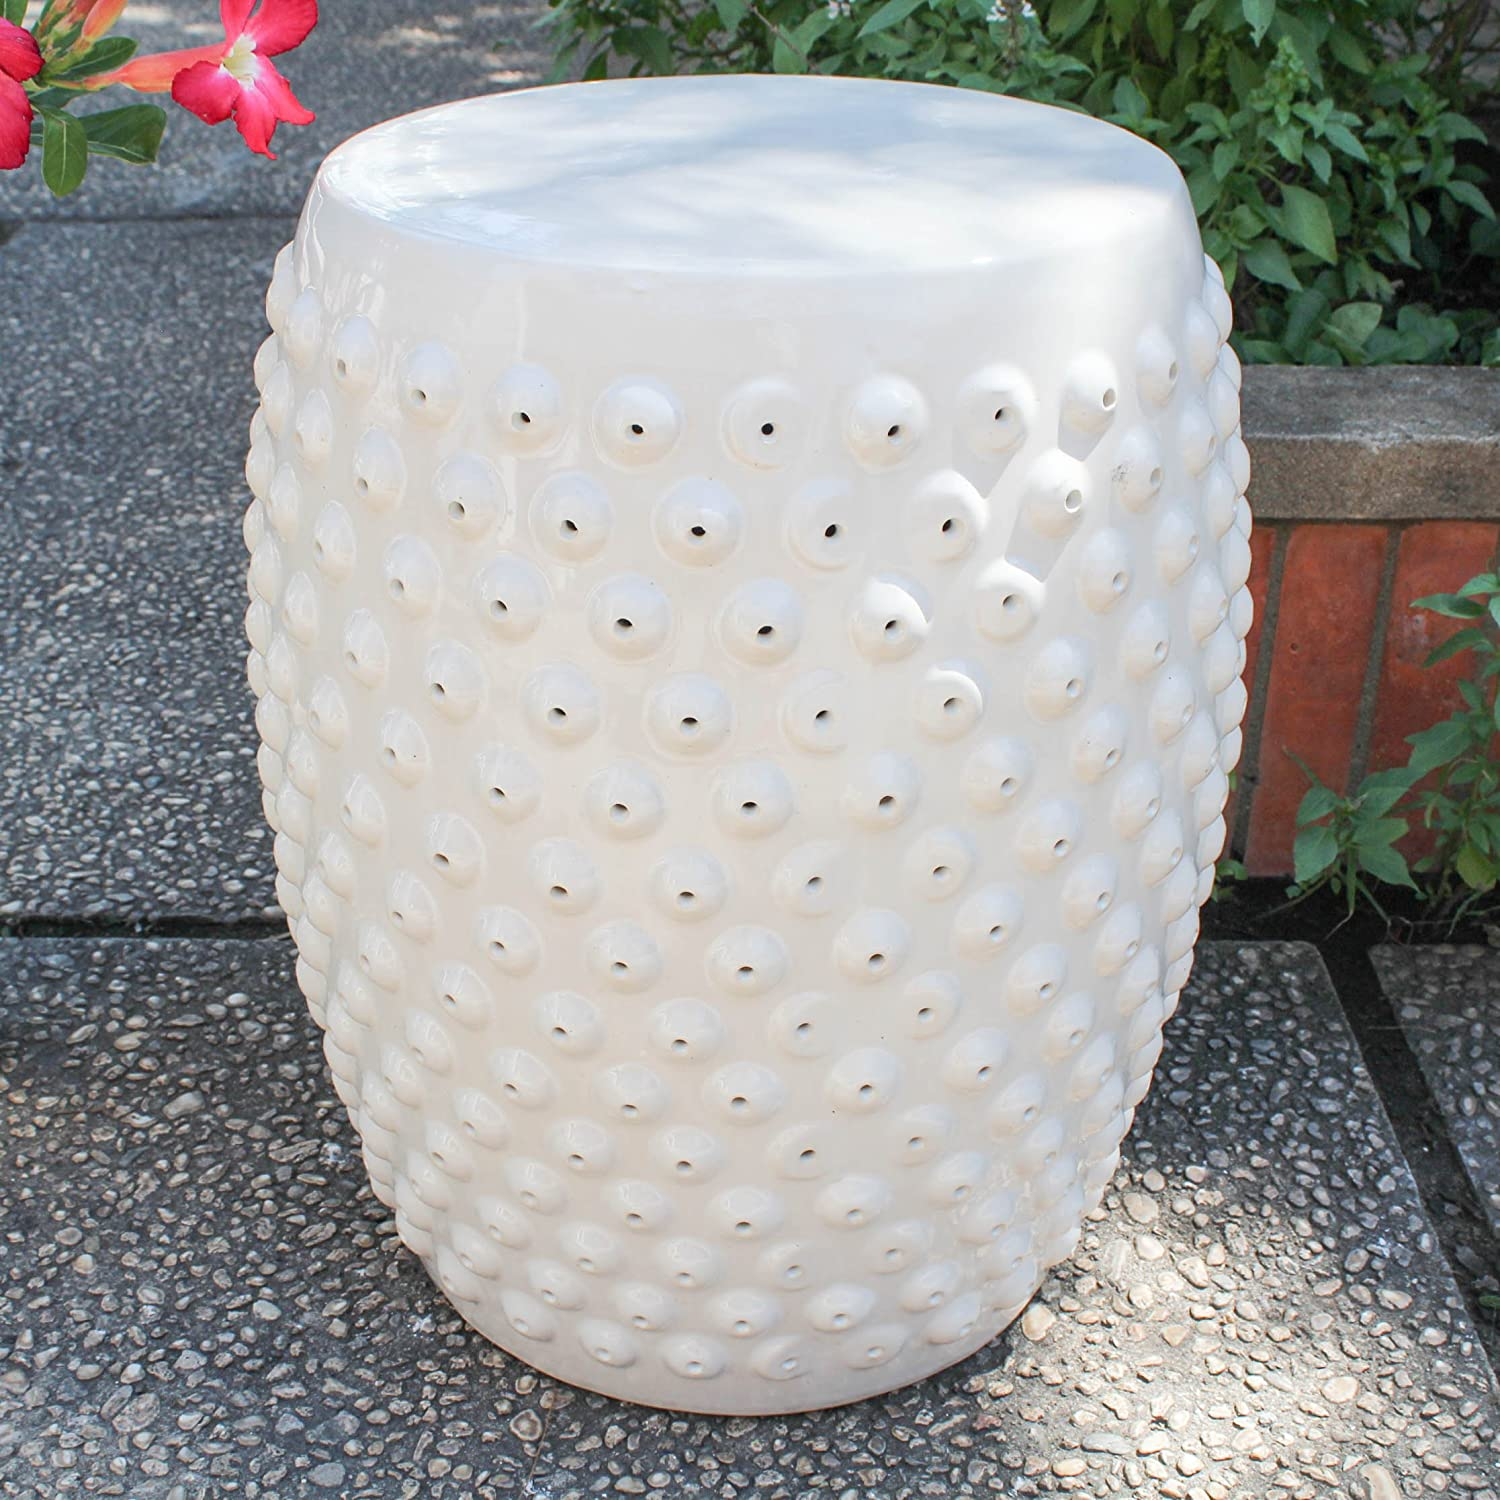 International Caravan OPG-070-AW-IC Furniture Piece Perforated Antique White Drum Ceramic Garden Stool, White Off-White